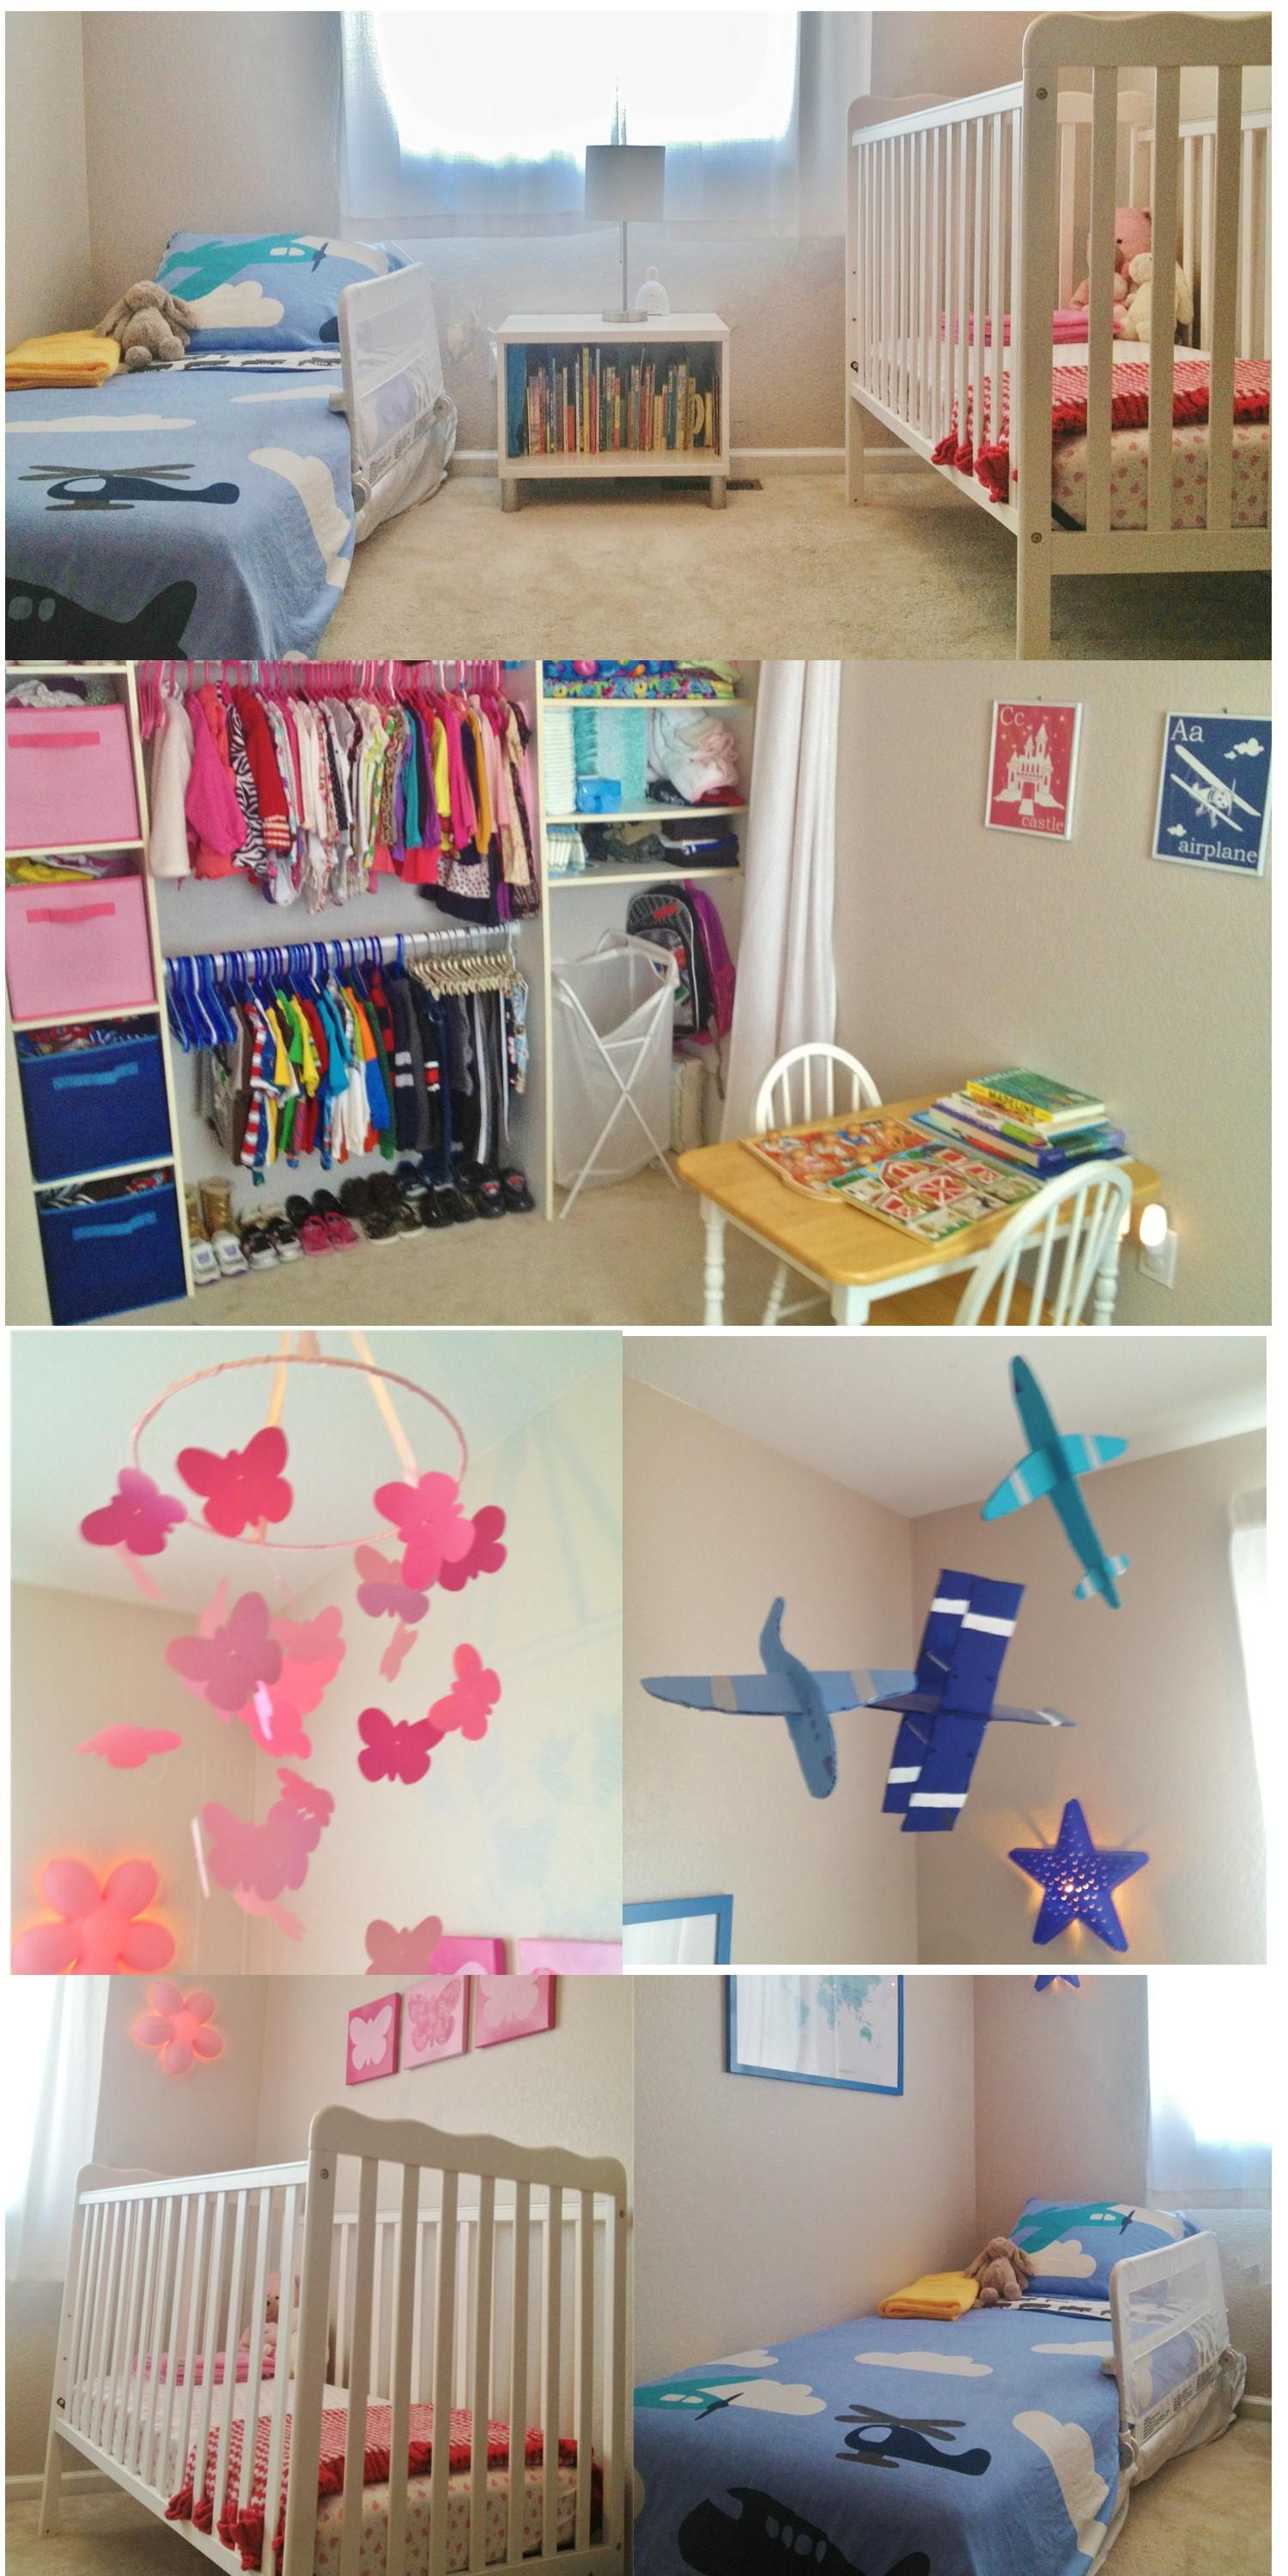 d Toddler Boy and Baby Girl Room d Closet Pink and Blue